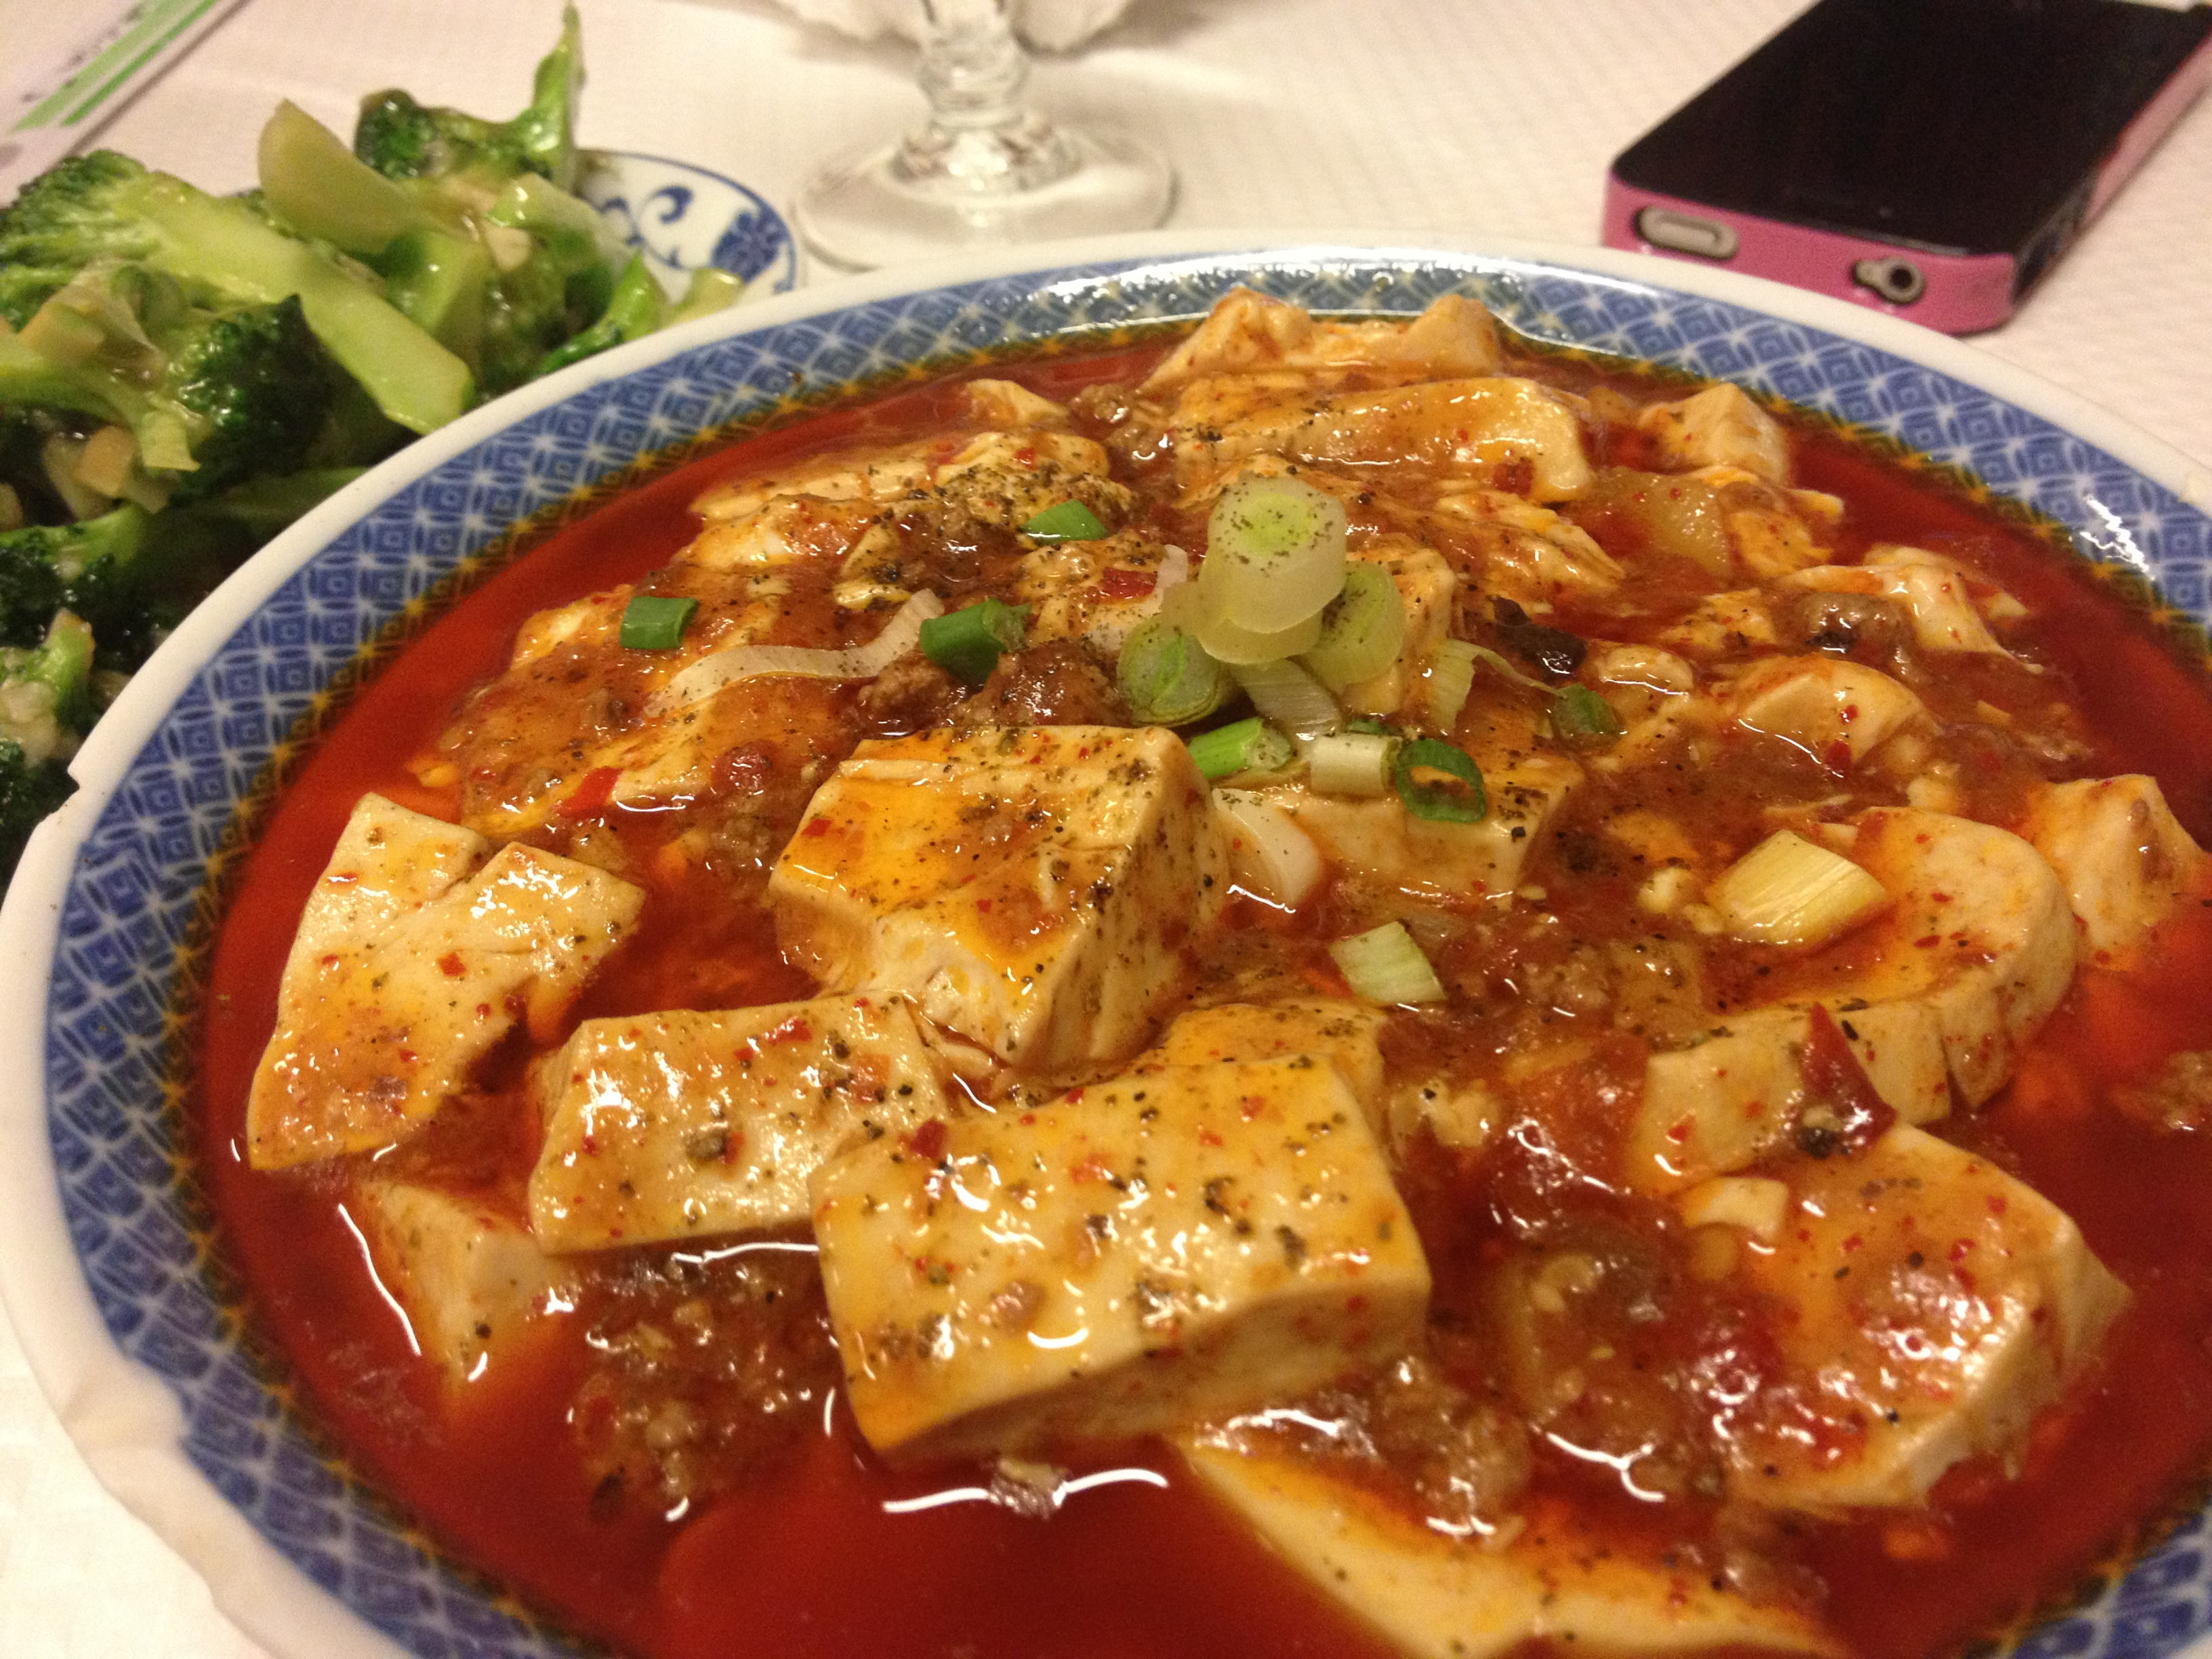 Mapo Tofu at Deux Fois Plus de Piment restaurant in Paris | parisbymouth.com